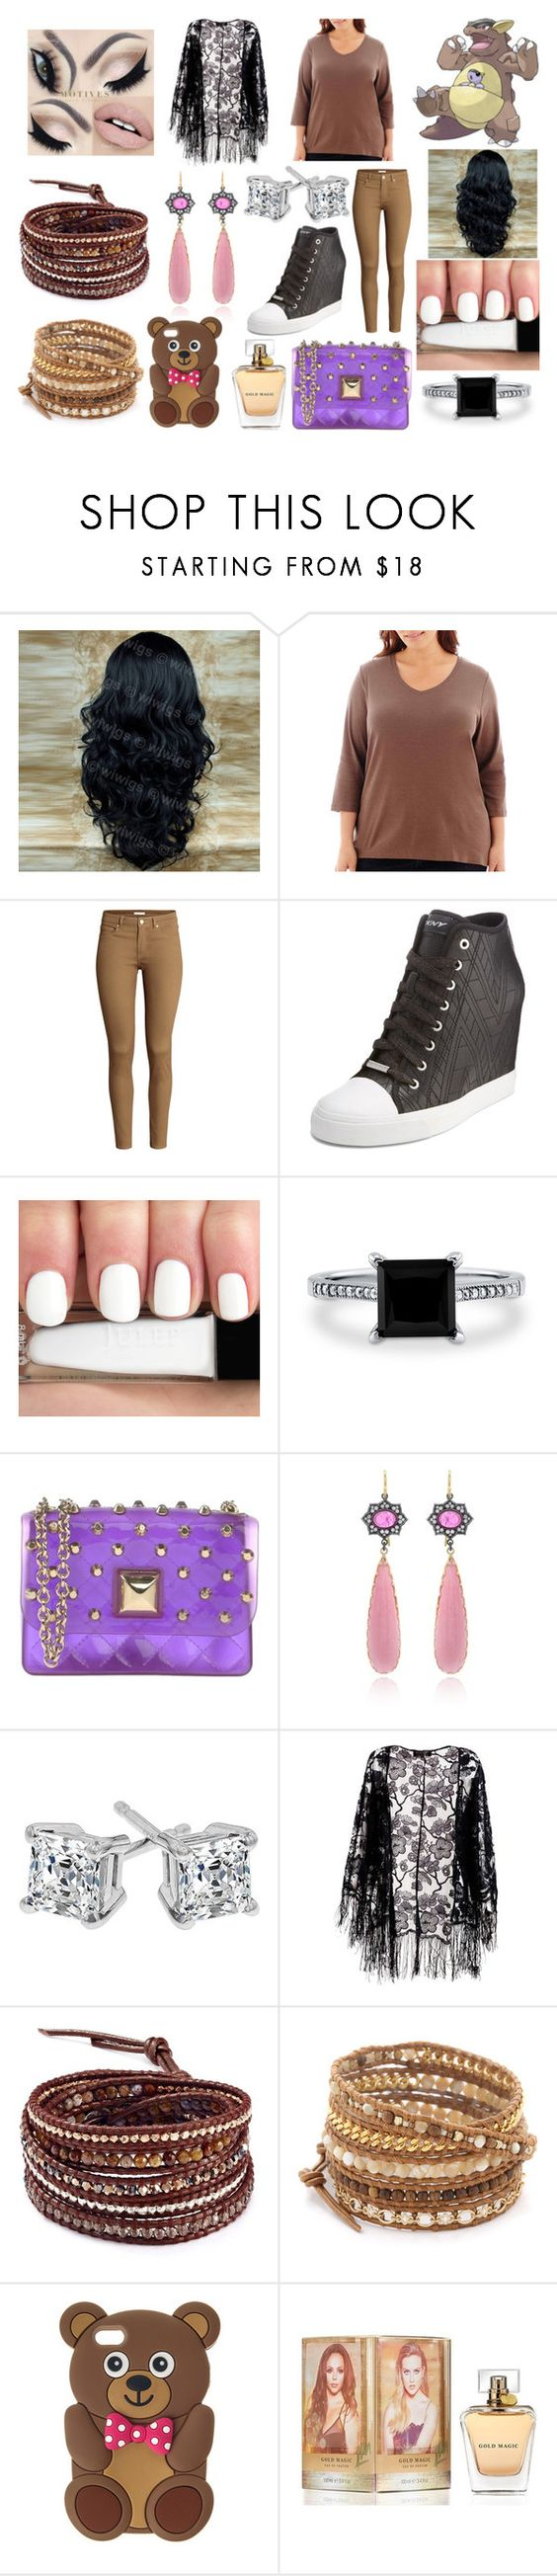 """#115 Kangaskhan Theme"" by kitty-styles-horan-biedka ❤ liked on Polyvore featuring beauty, St. John's Bay, H&M, DKNY, BERRICLE, Hervê Guyel, Pussycat, Chan Luu and plus size clothing"